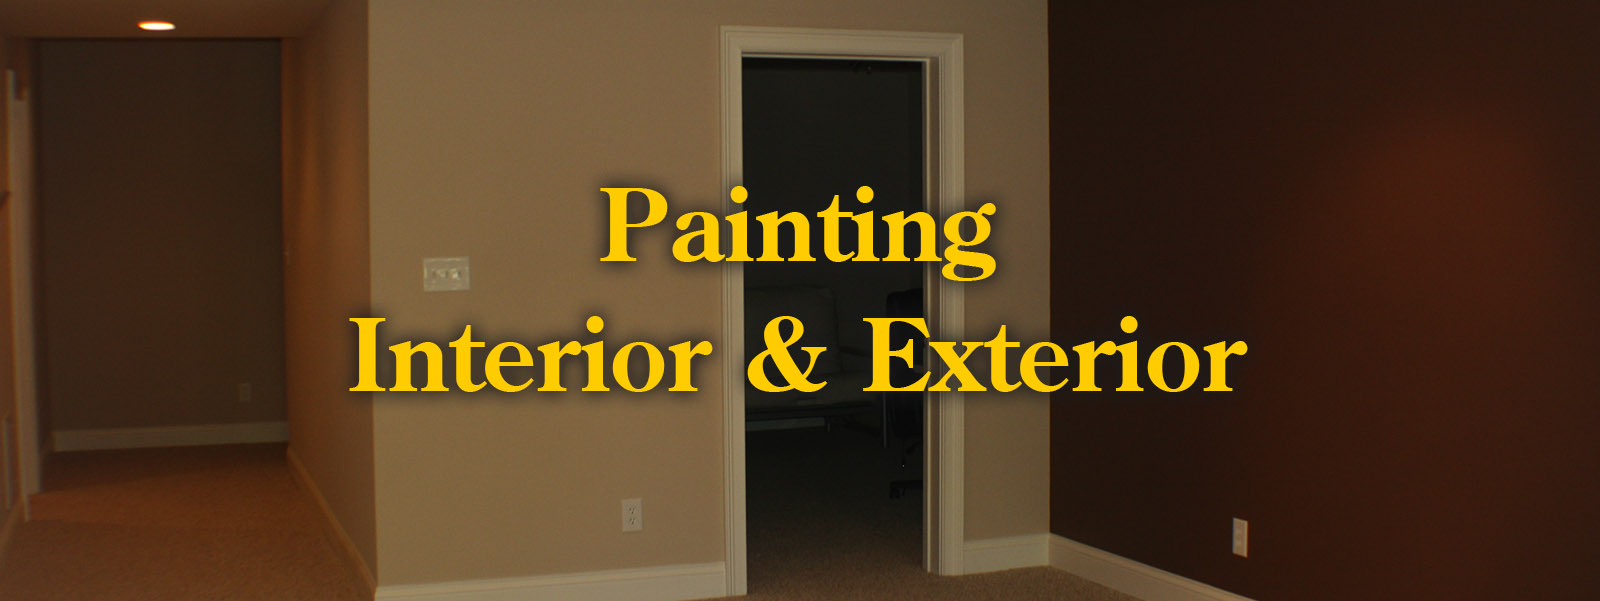 painting - interior and exterior trim